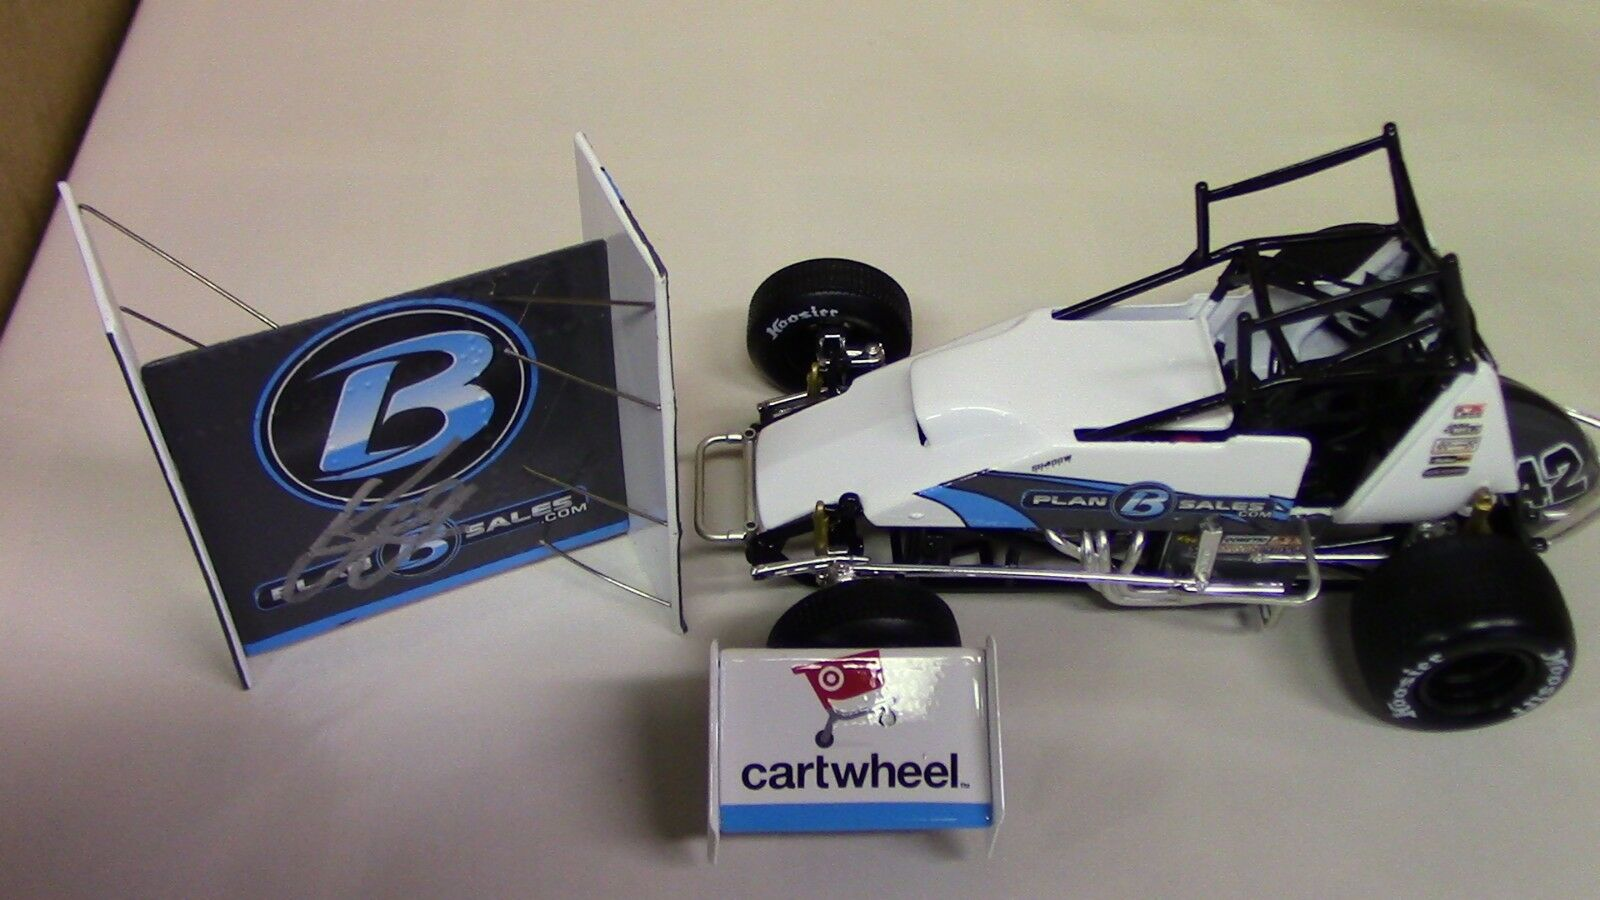 Kyle Larson AUTOGRAPHED World of Outlaws Dirt Sprint Car 1 24 Scale New w COA